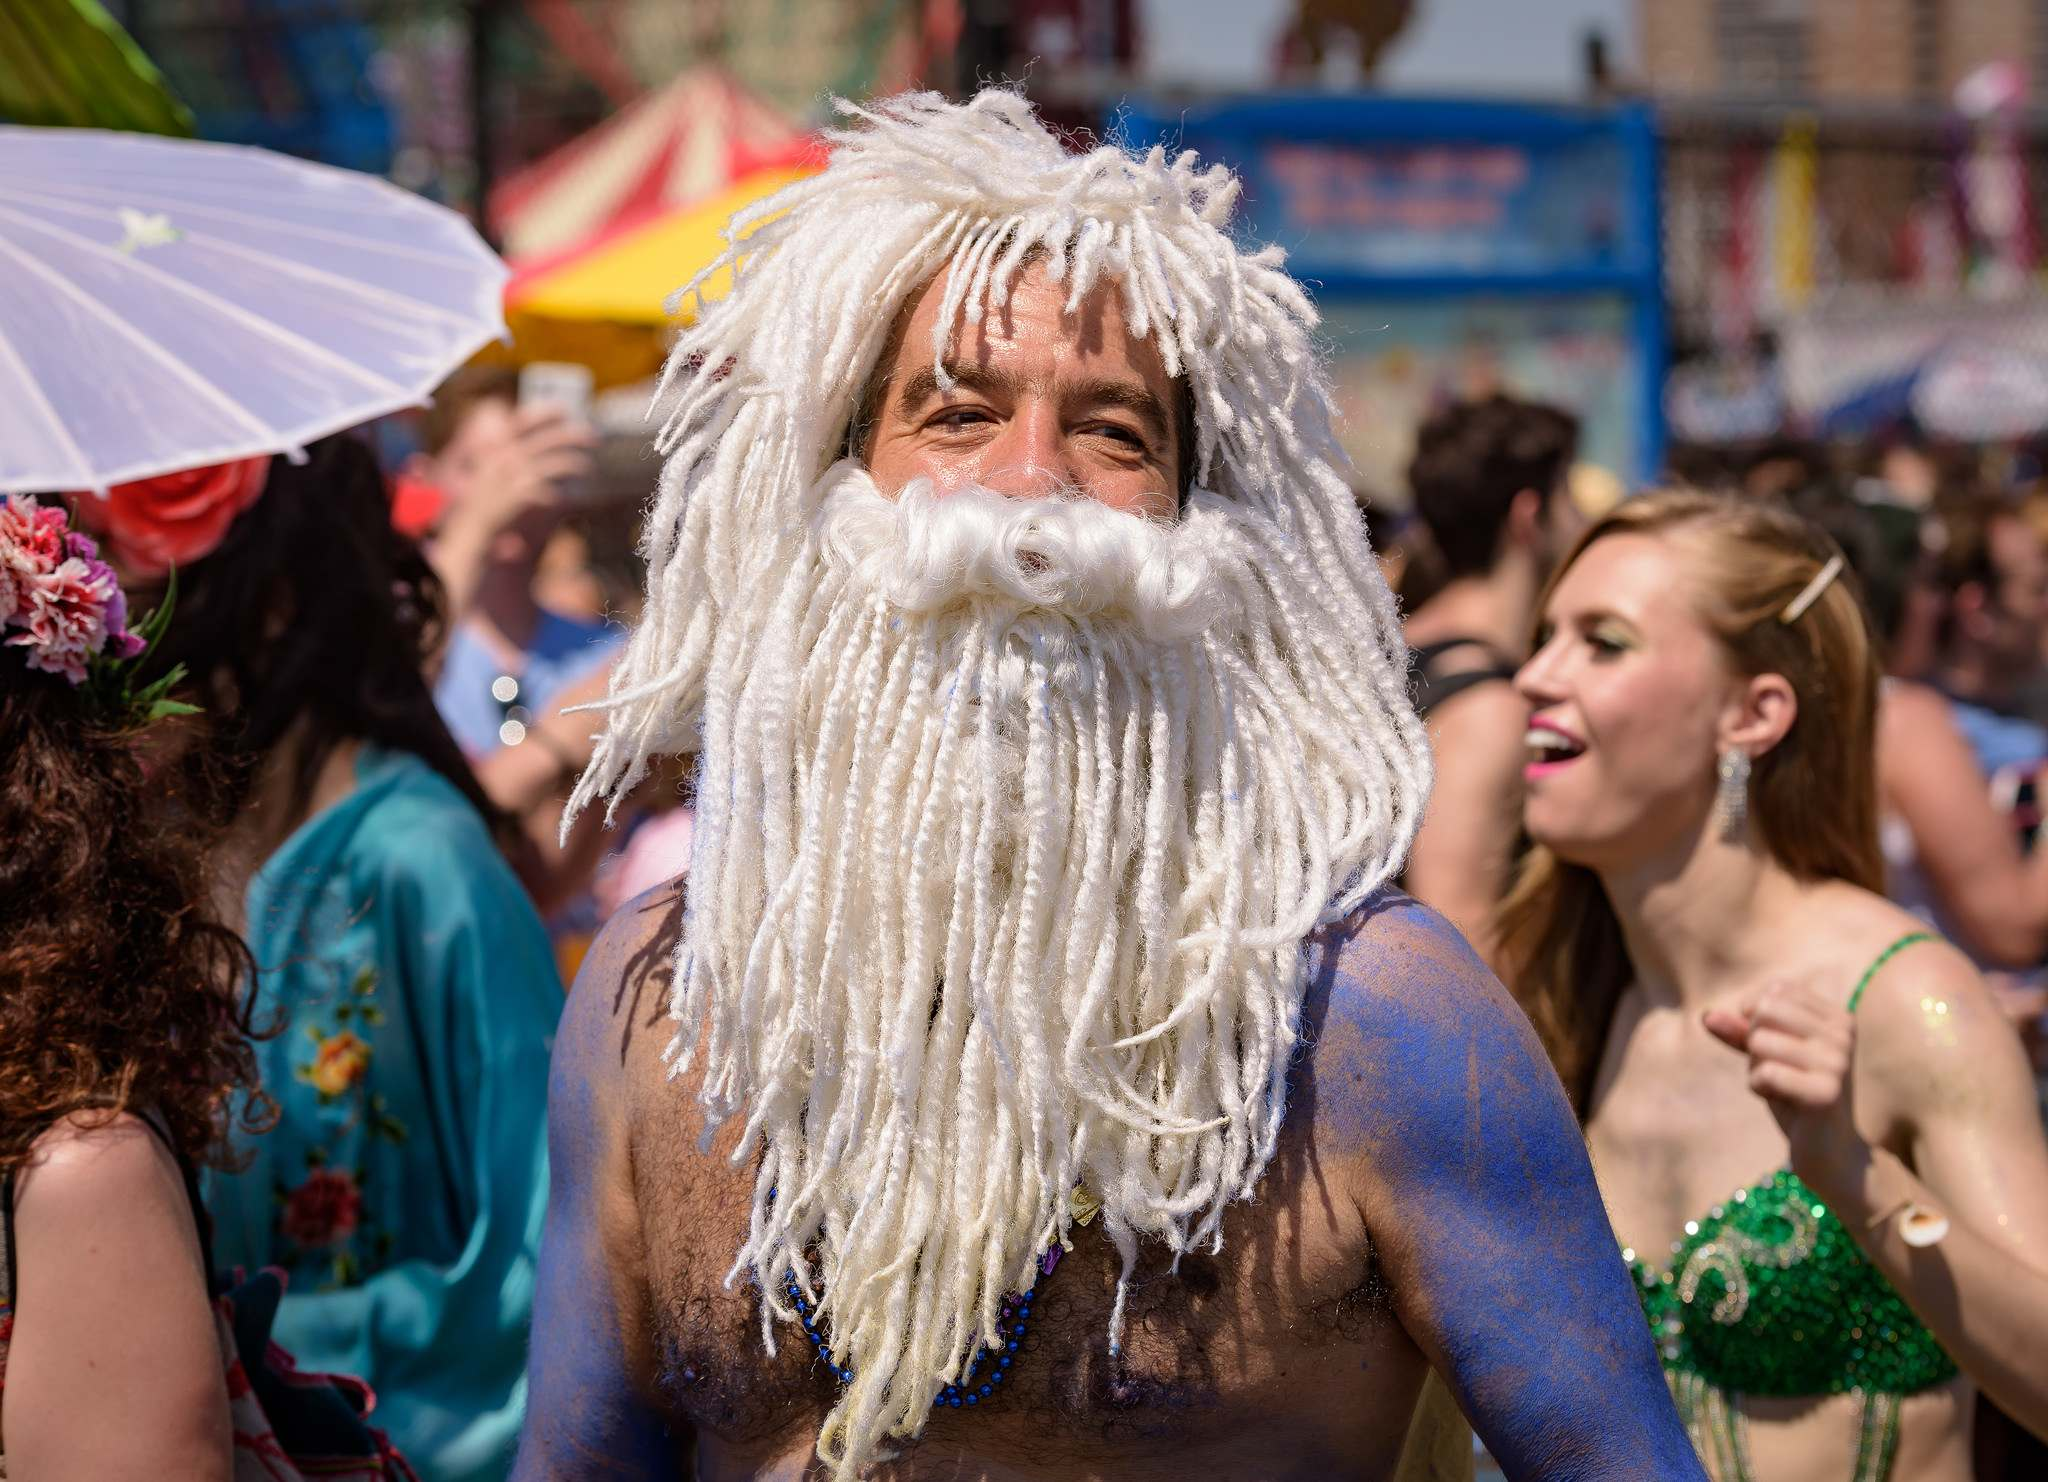 mermaid parade5 2016 Coney Island Mermaid Parade in NYC